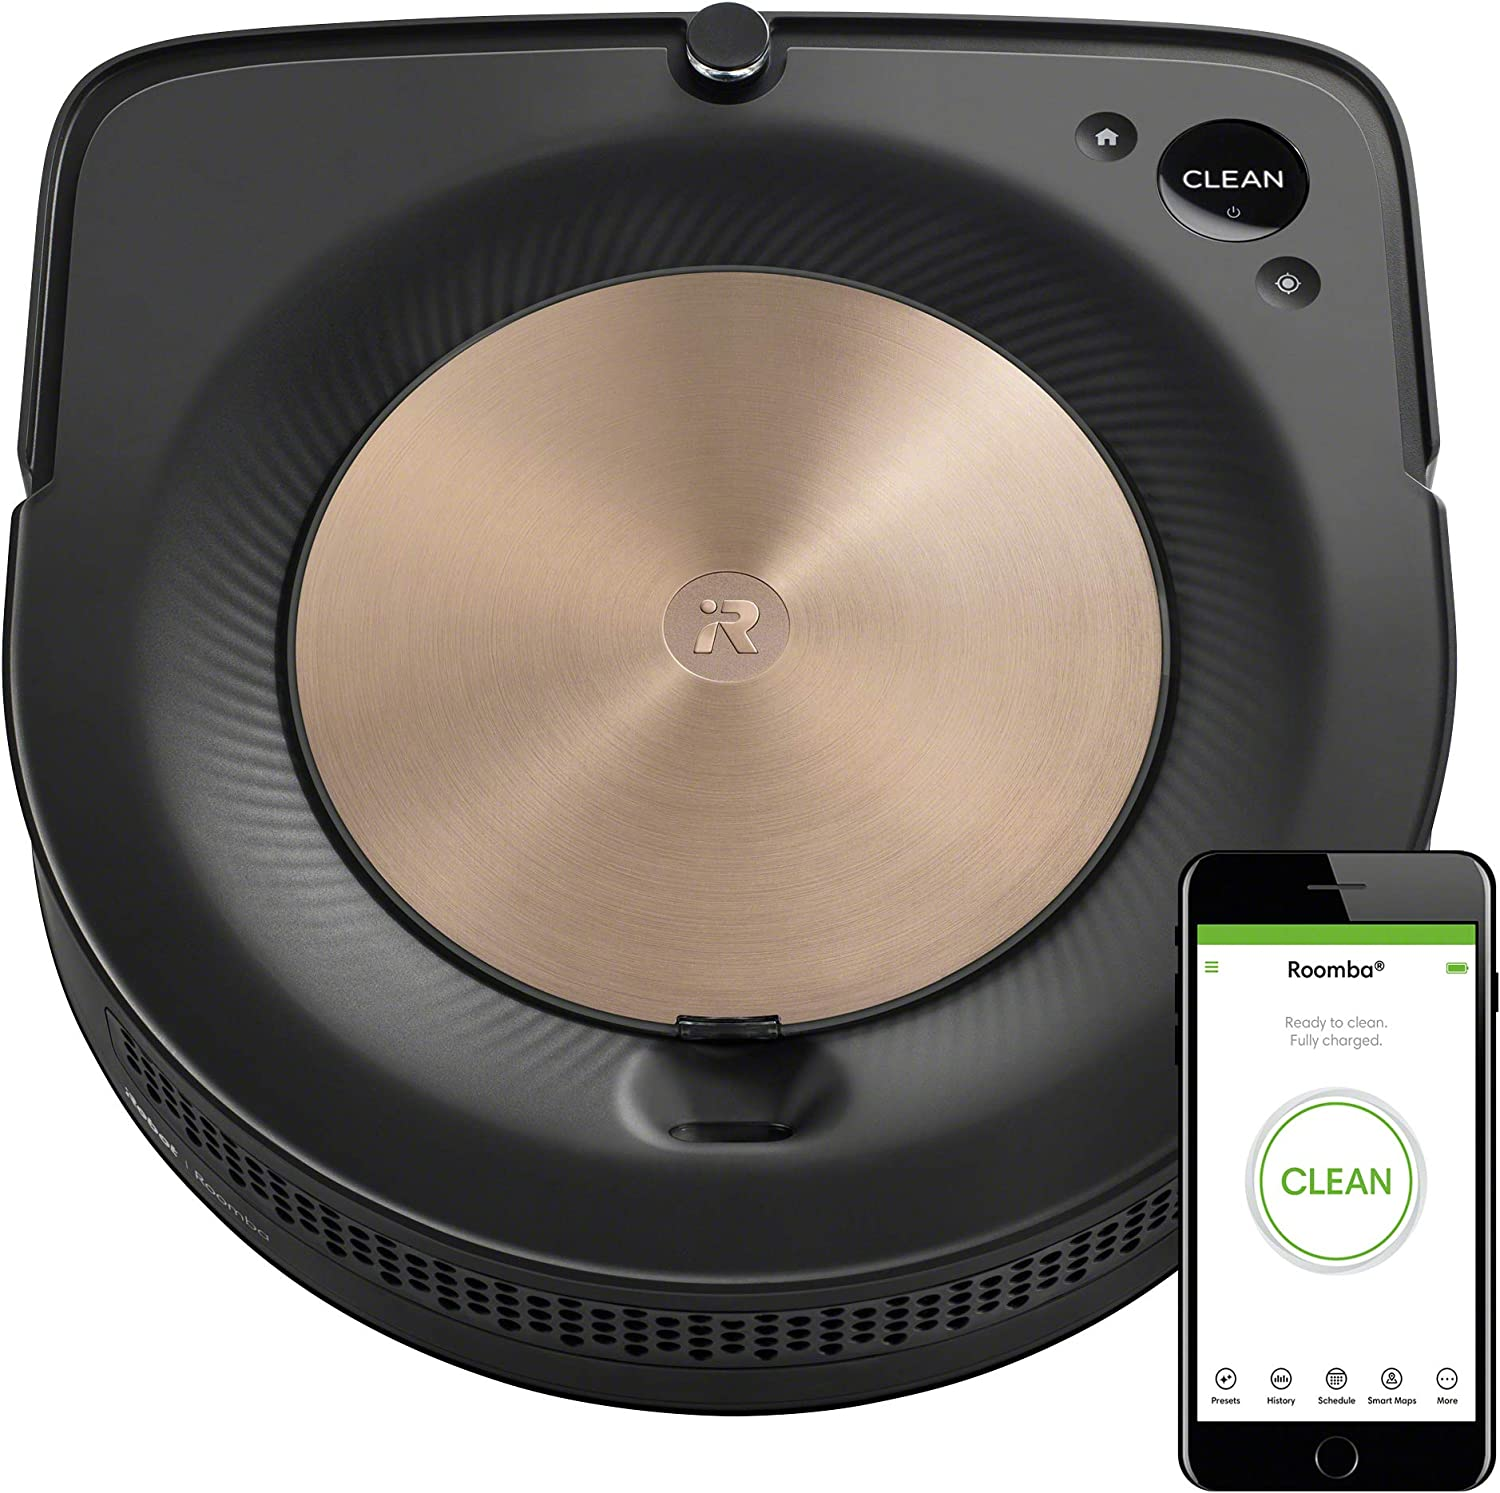 iRobot Roomba S9 (9150) Robot Vacuum- Wi-Fi Connected, Smart Mapping, Powerful Suction, Works with Alexa, Ideal for Pet Hair, Works With Clean Base